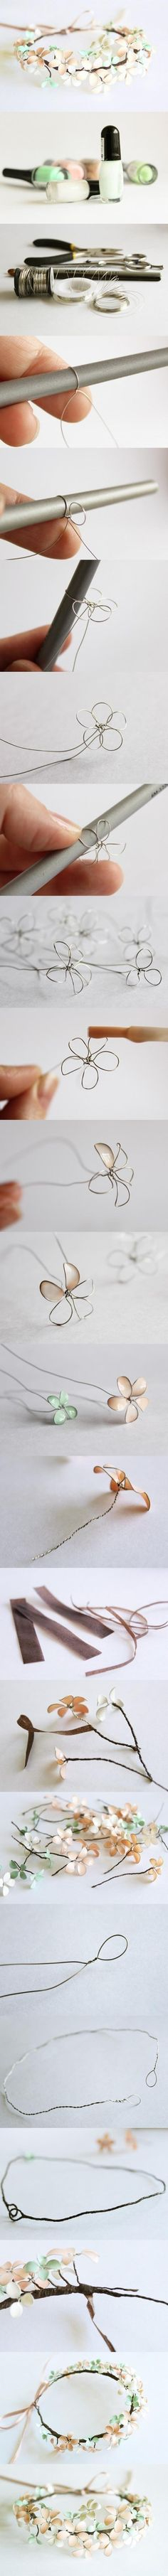 With thin wire, glue and nail polish to do some pretty flowers.